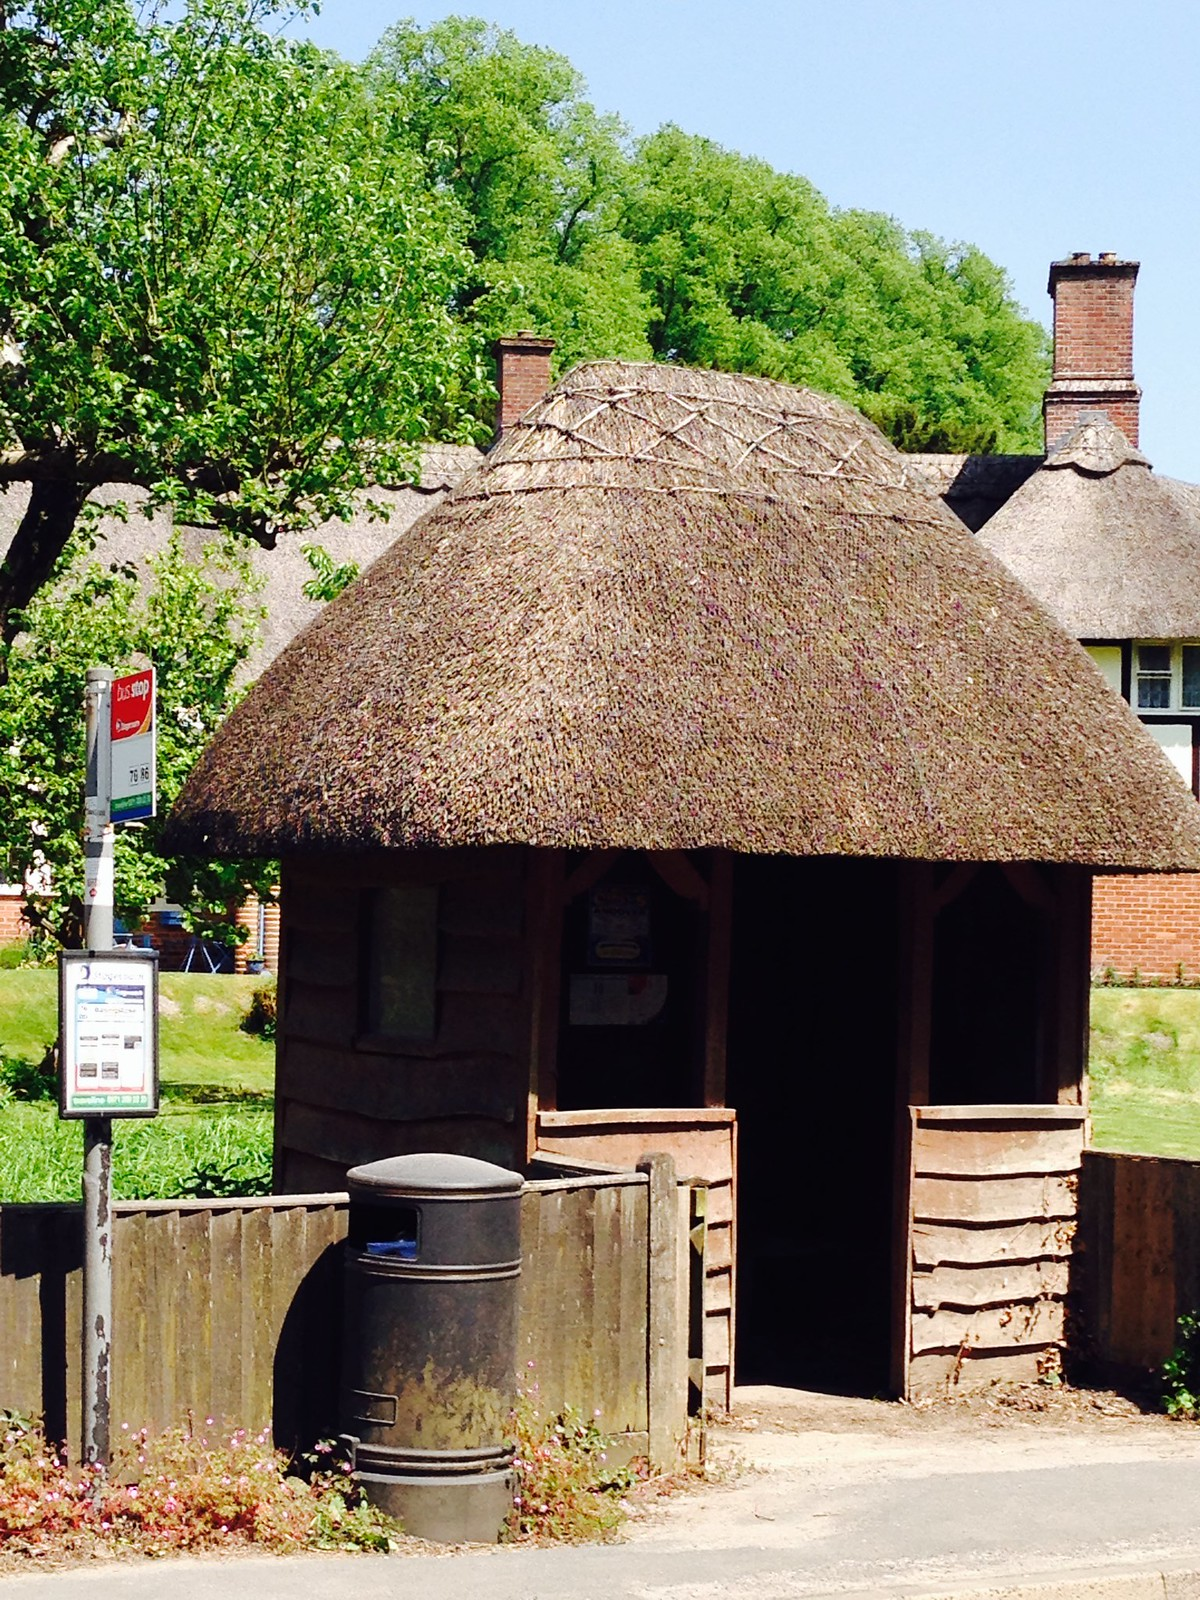 Thatched bus stop, Manor Cottages, Freefolk SWC Walk 53 Overton to Whitchurch